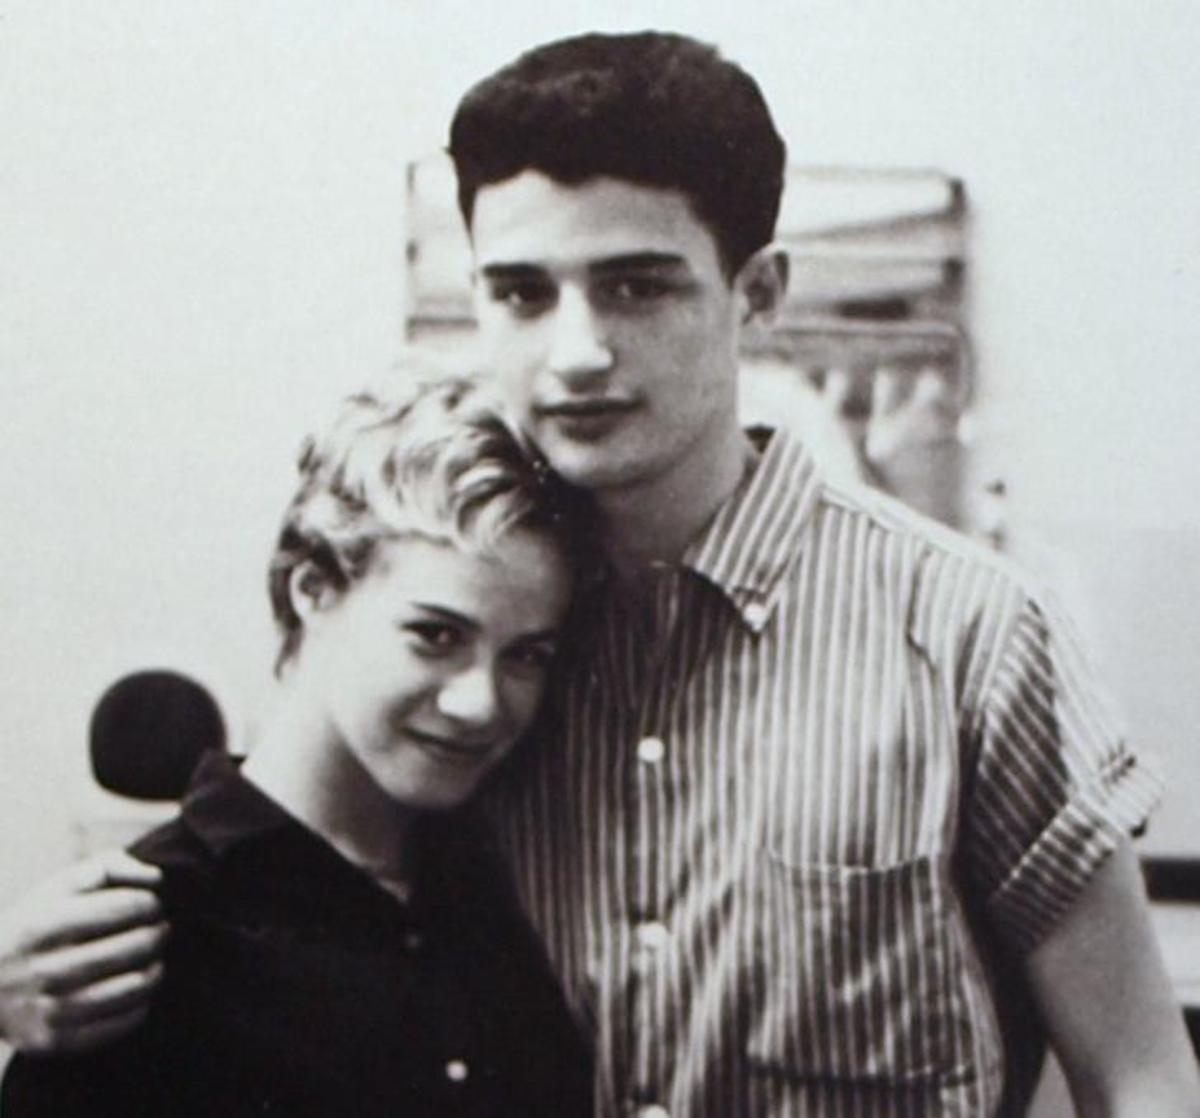 Hitmakers Carole King and Gerry Goffin Photo cropped from the cover of their Songbook album